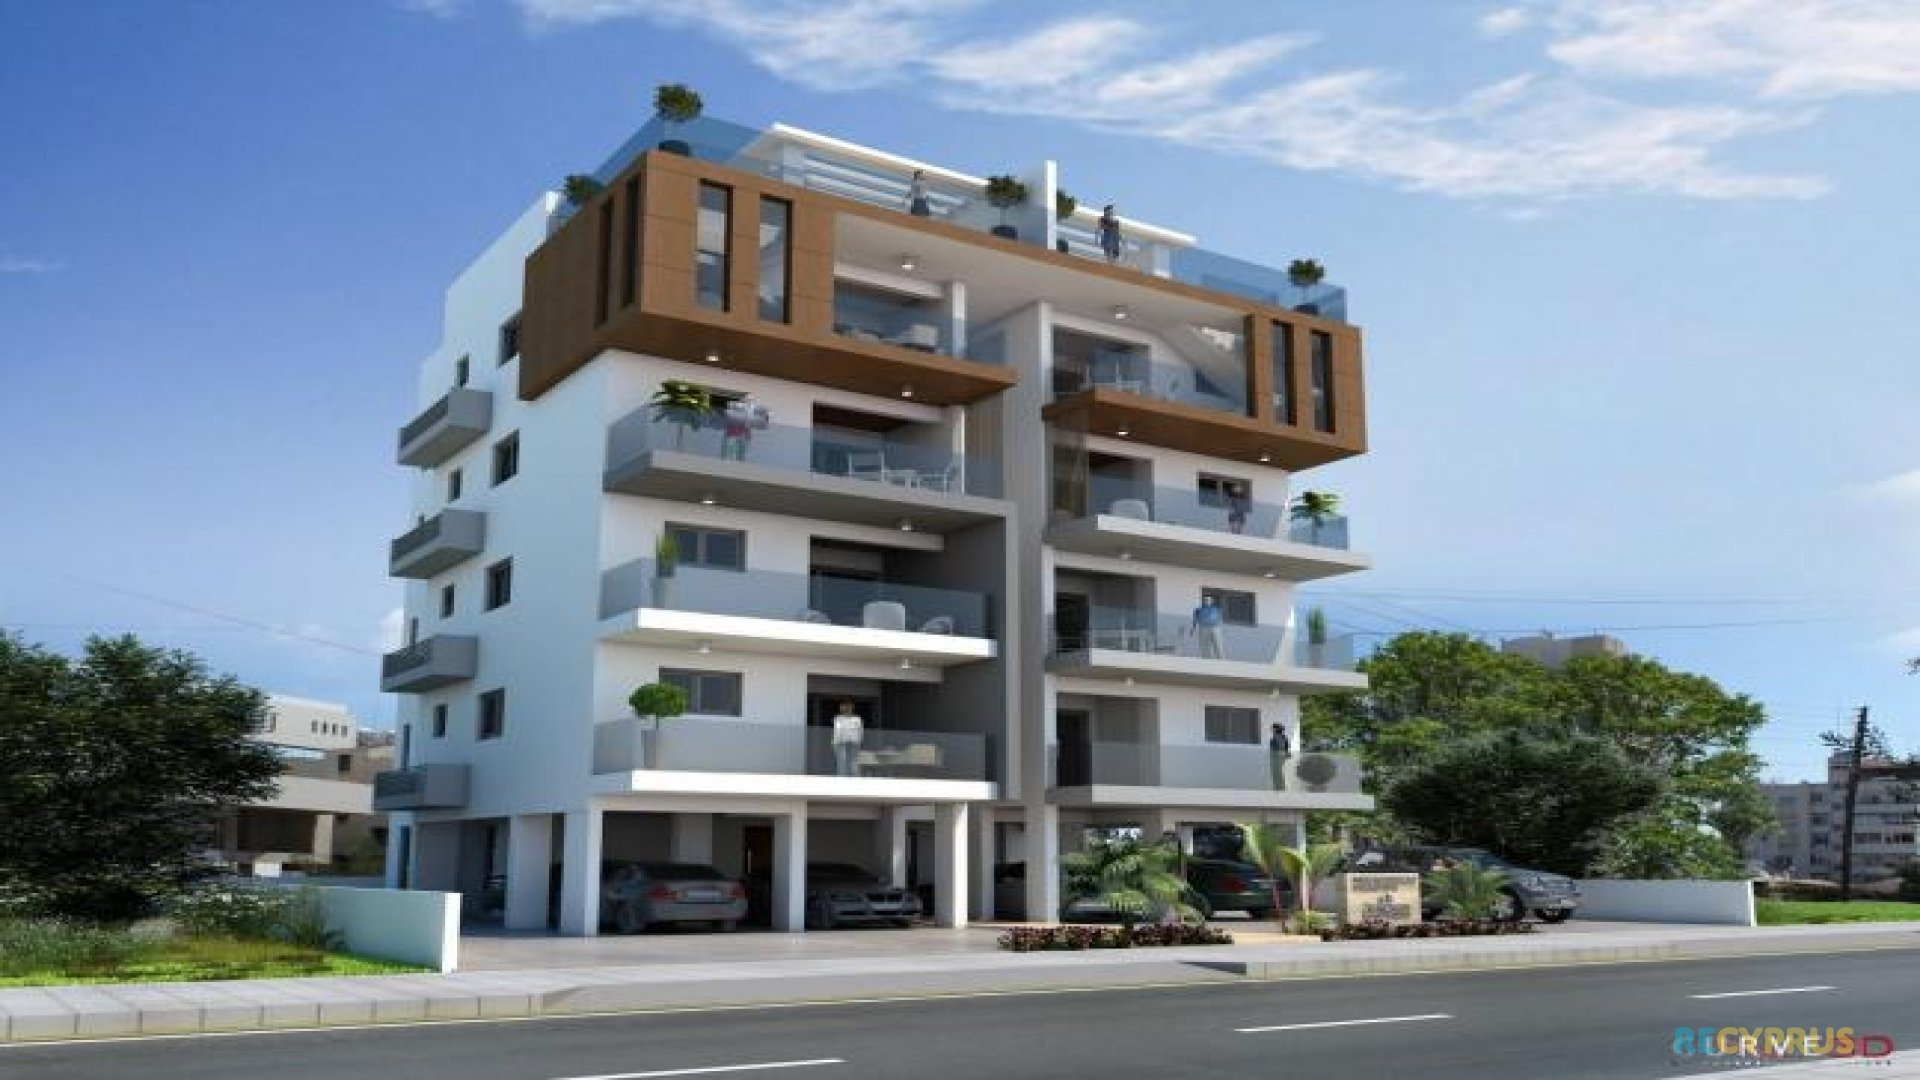 Apartment for sale City Center Larnaca Cyprus 10 3584